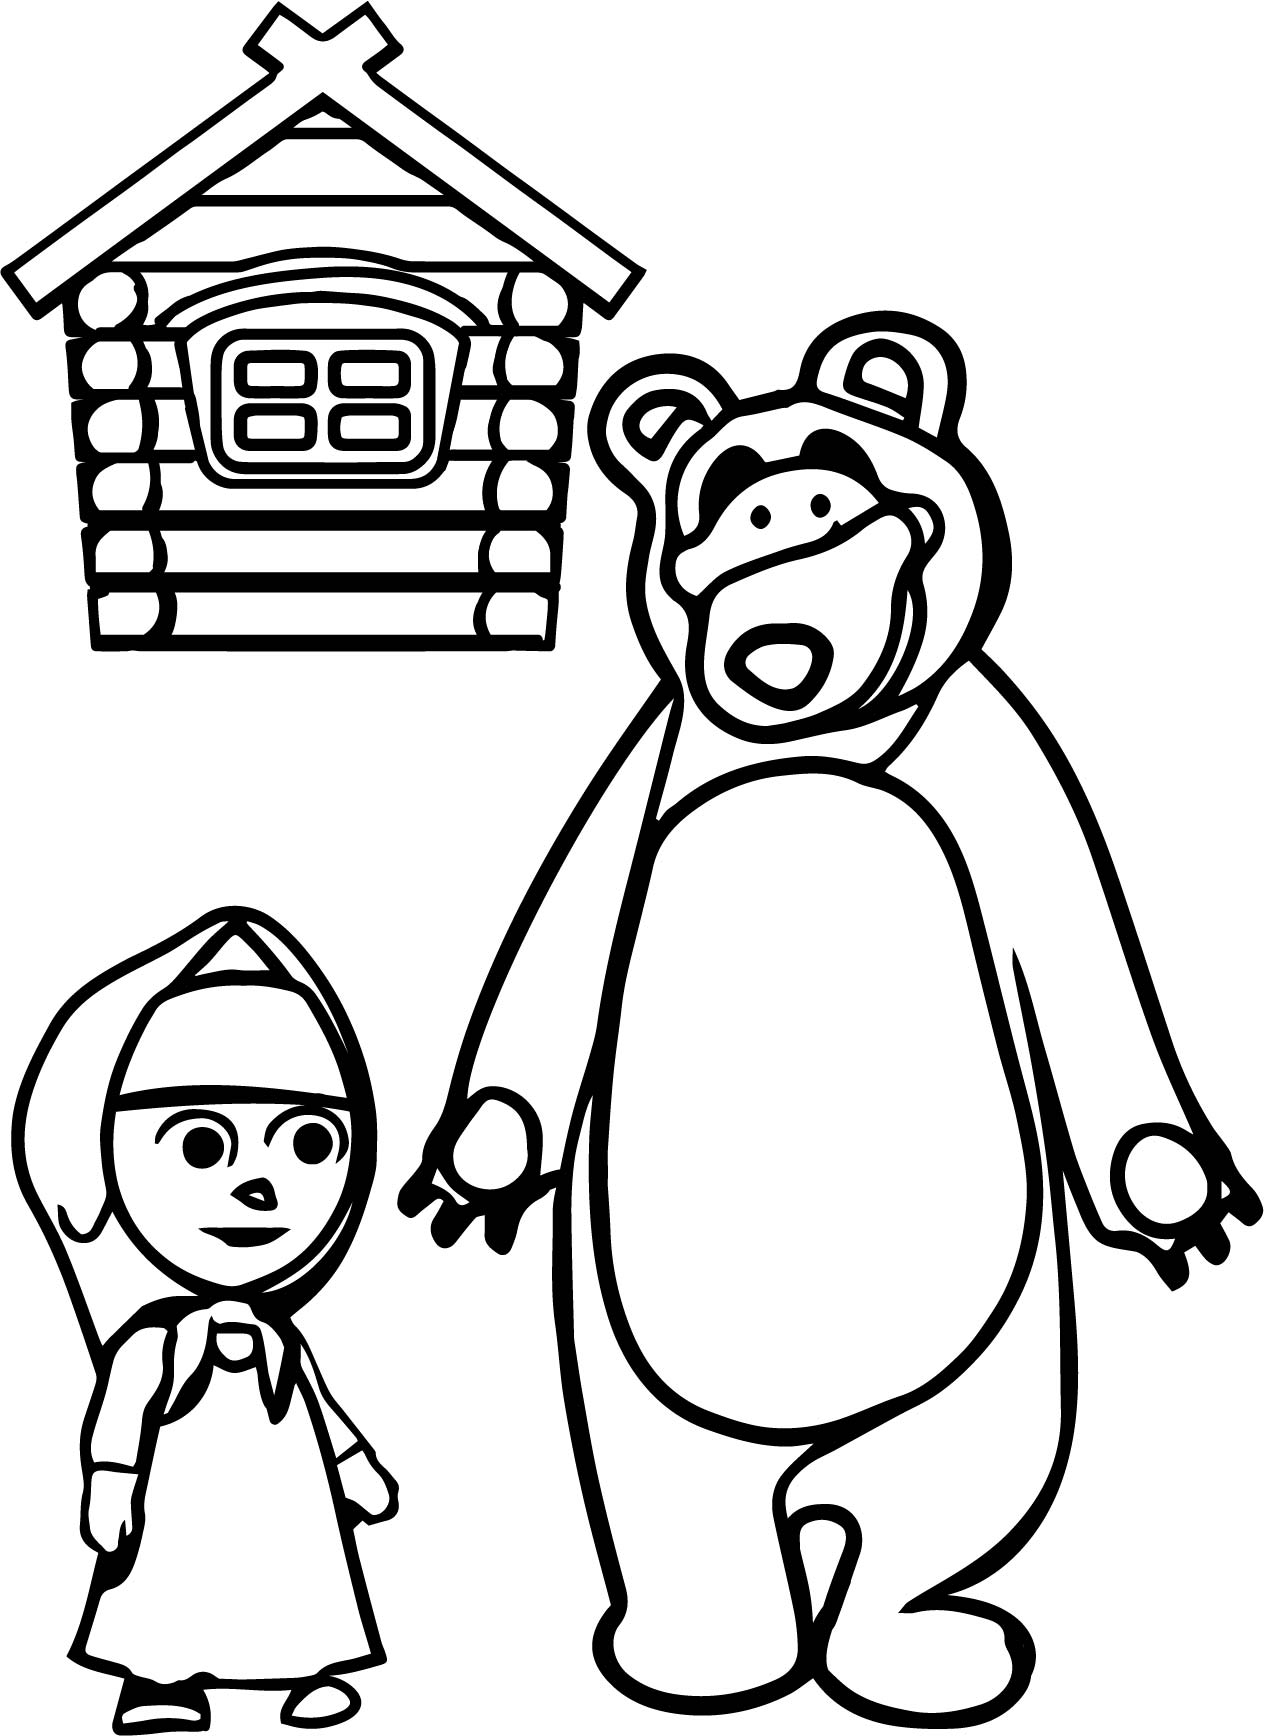 mawa kawa masha and bear home coloring page wecoloringpage